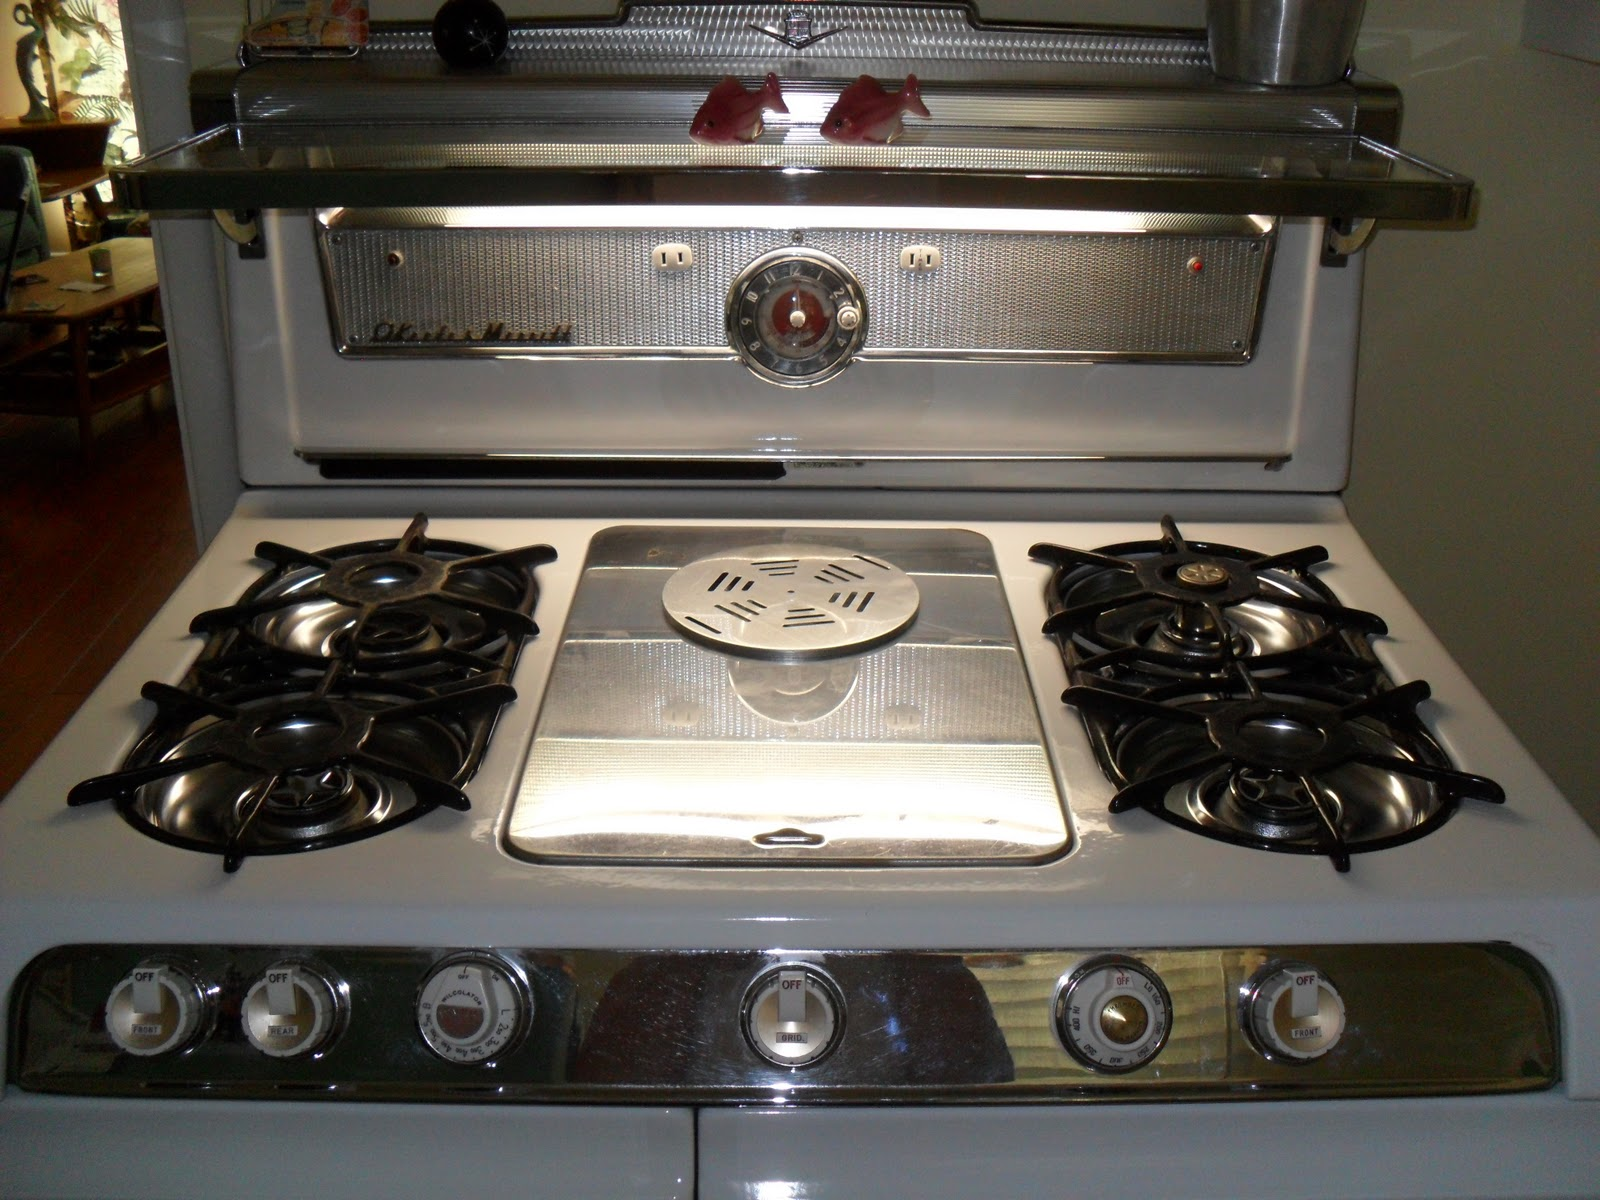 The Rockin' Socialite: We Finally Got Our O'Keefe and Merritt Stove!